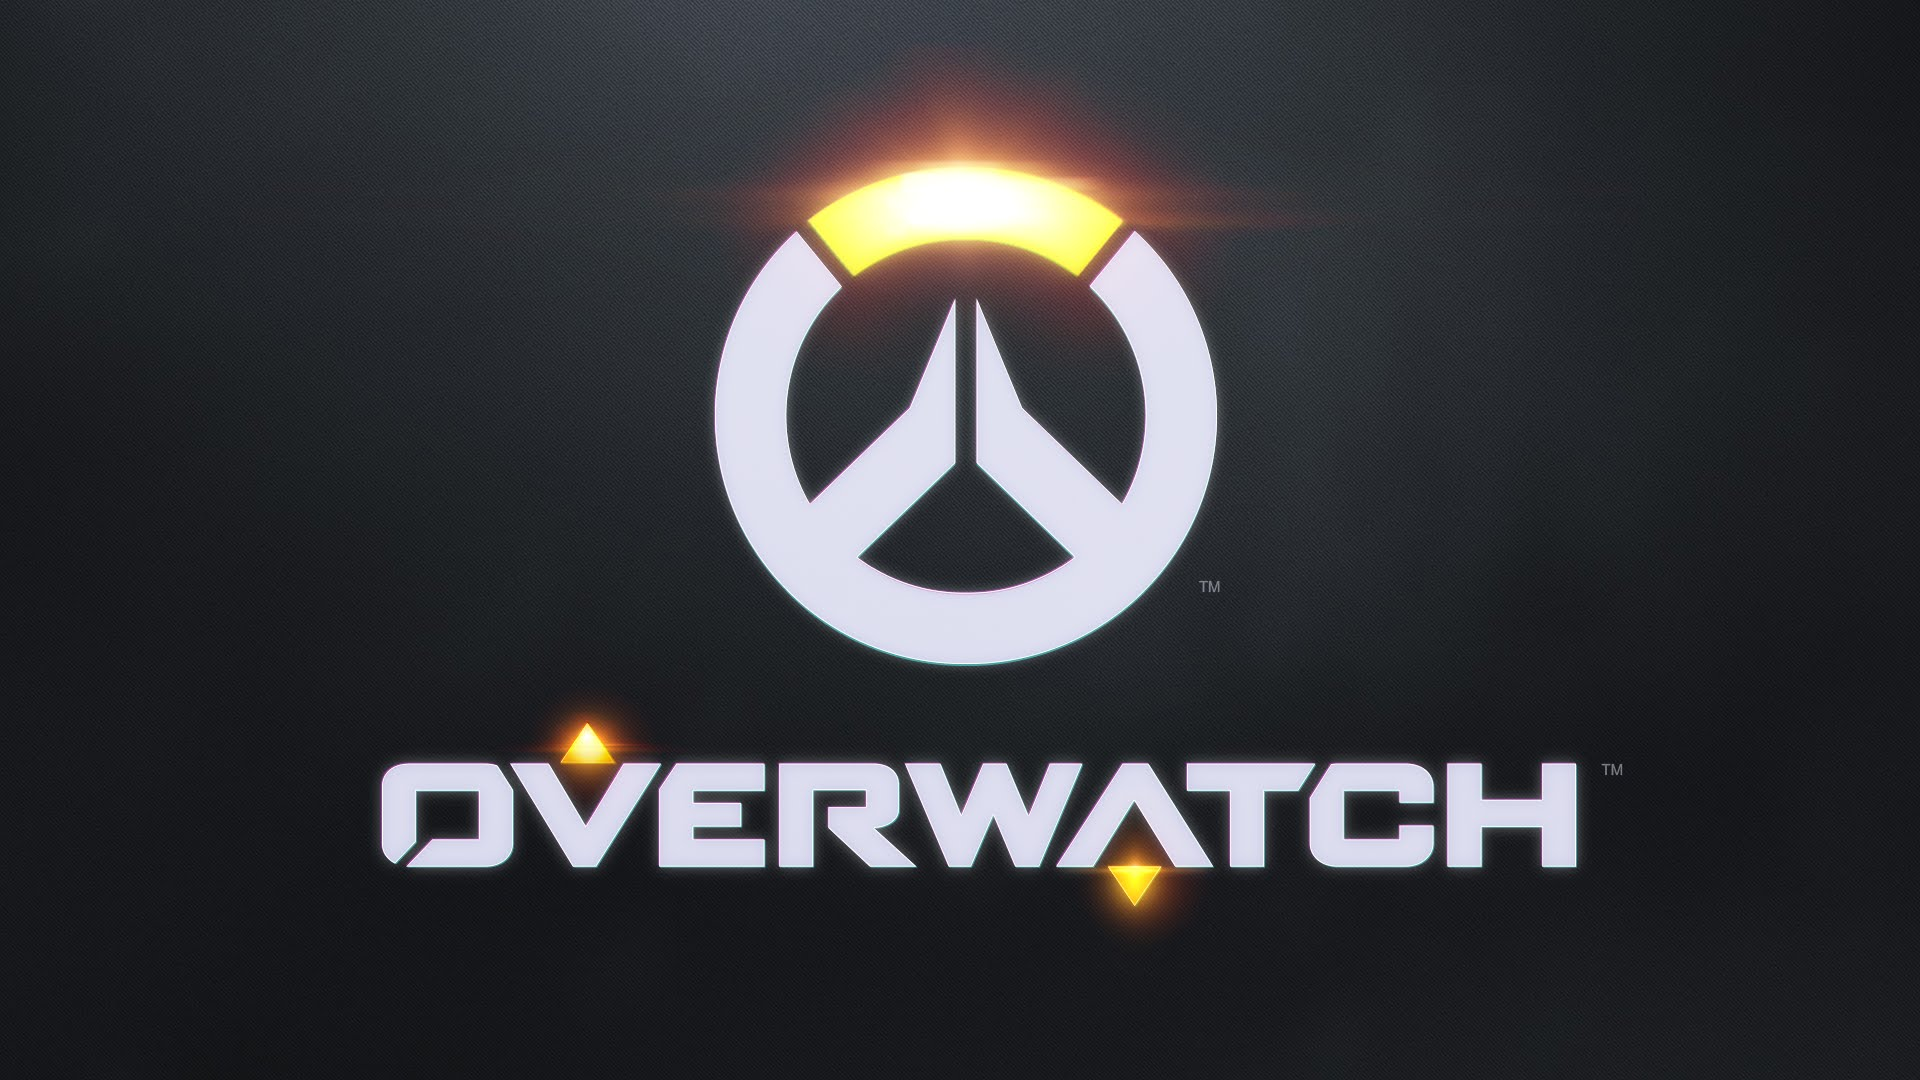 'Overwatch' reporting feature on console arriving with Patch 1.14, says Kaplan